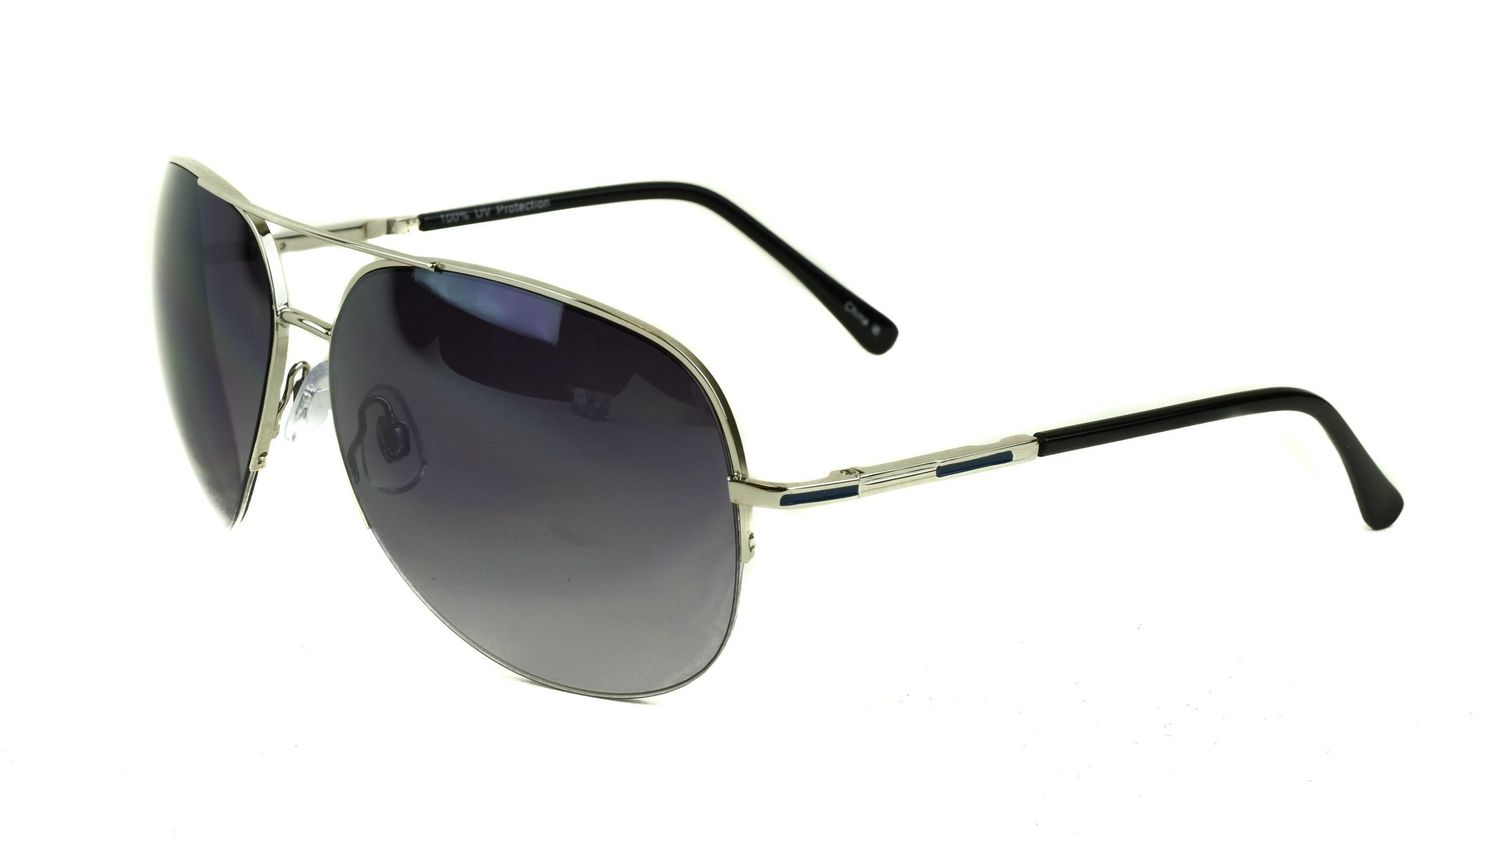 338632a2ea George Women s Silver Aviator Sunglasses - image 1 of 3 zoomed image